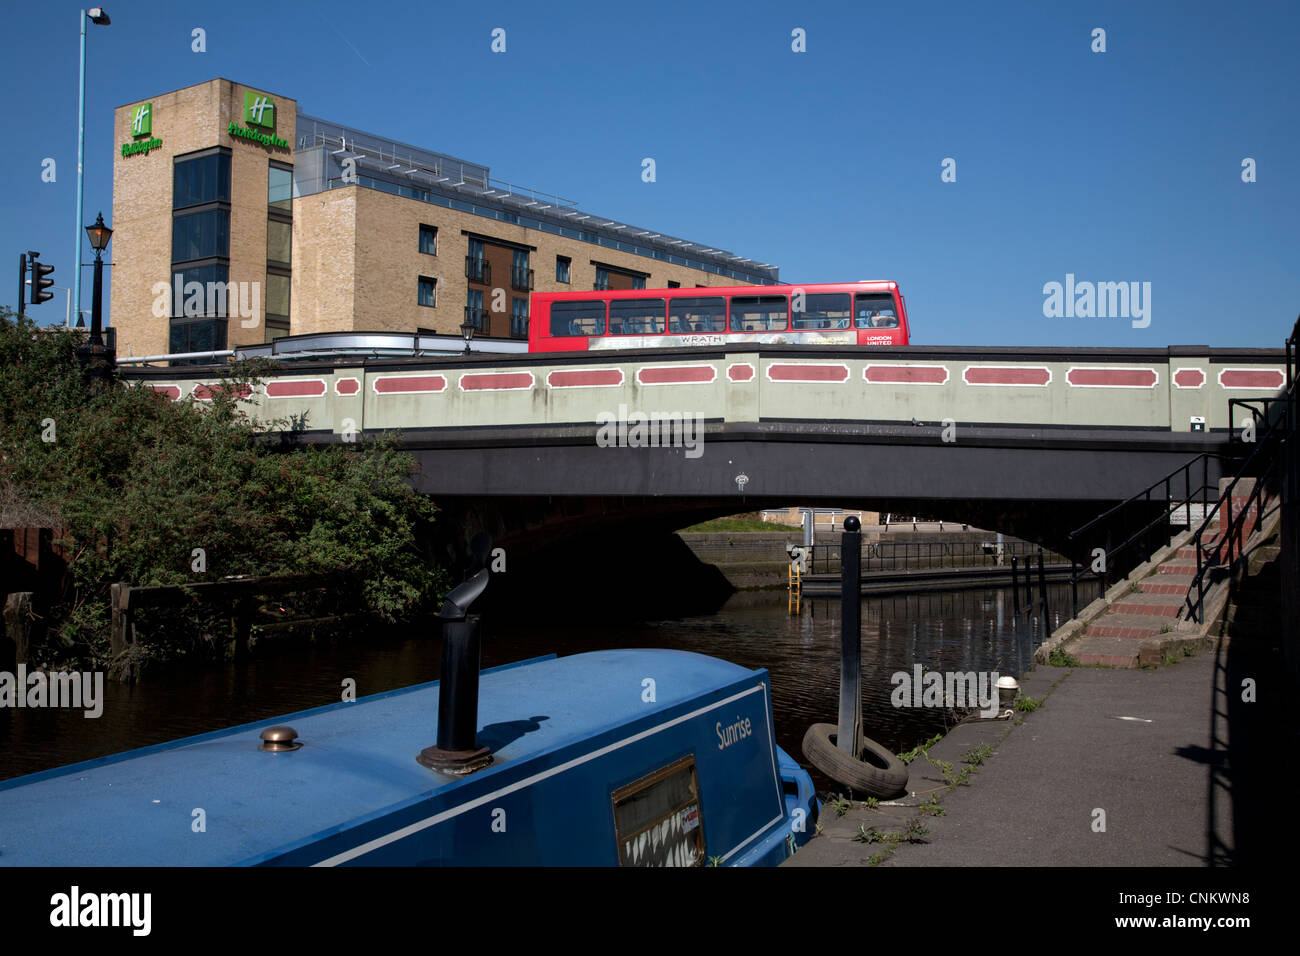 grand union canal/river brent brentford london england - Stock Image